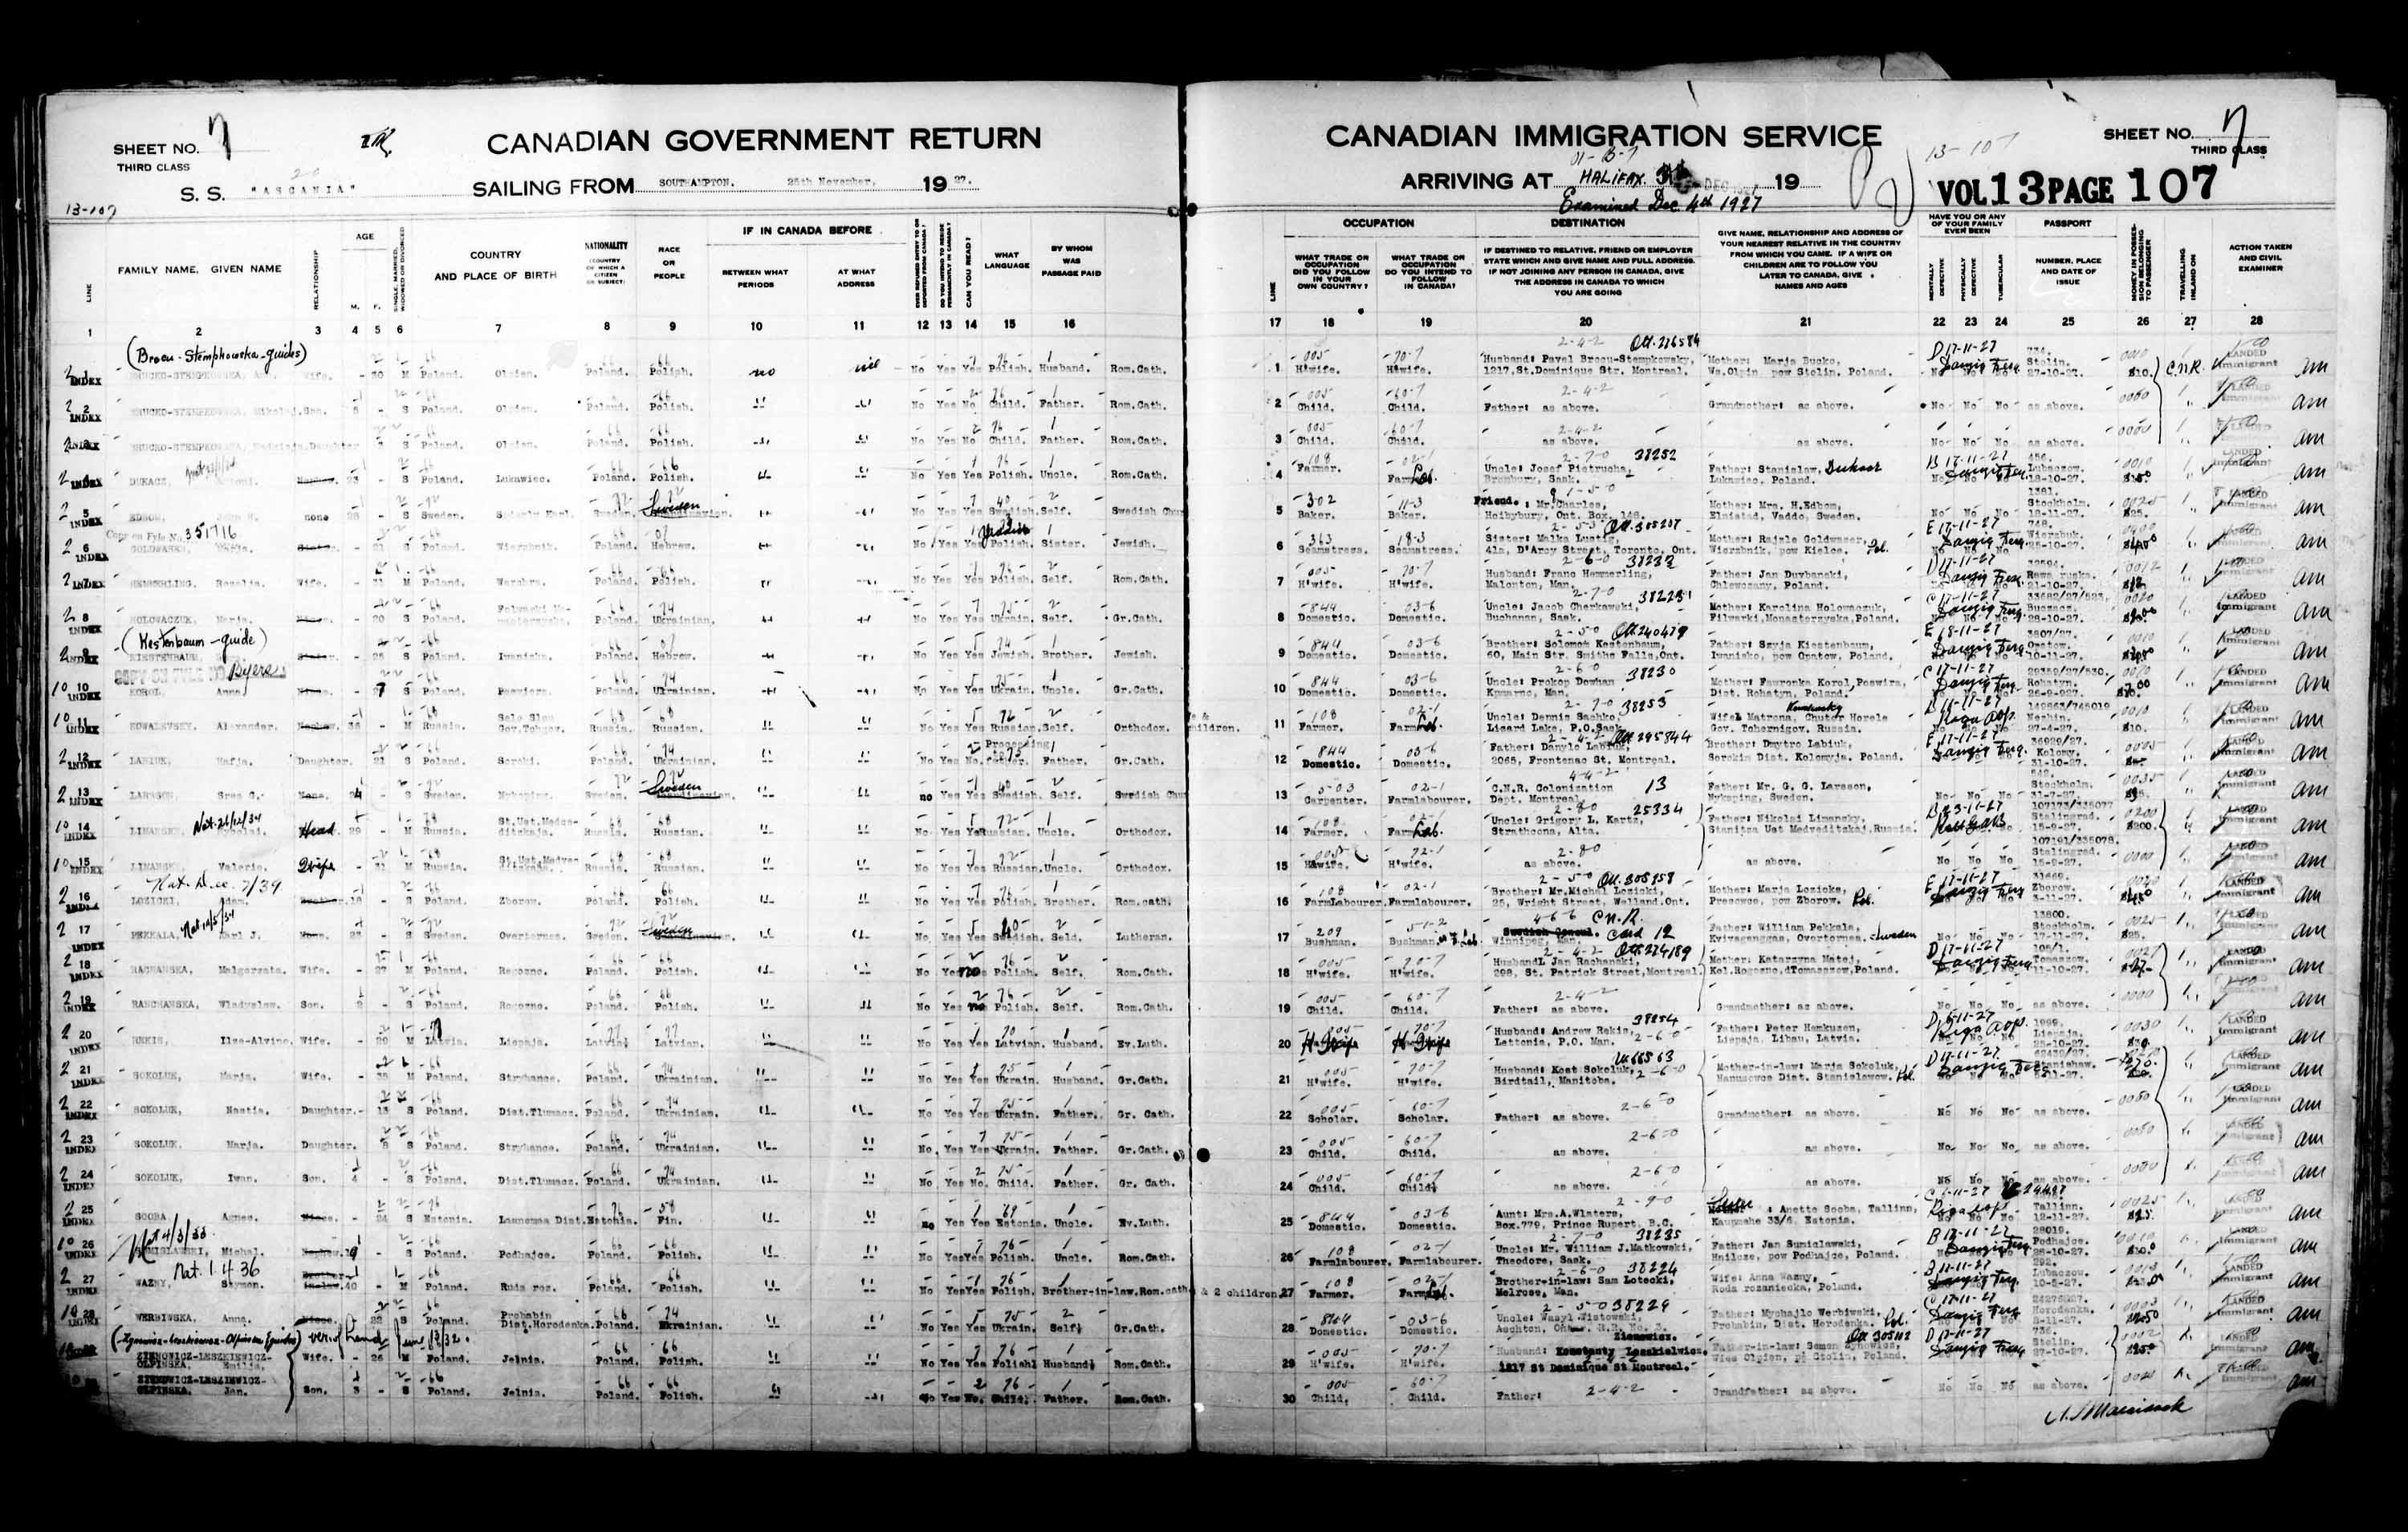 Title: Passenger Lists: Halifax (1925-1935) - Mikan Number: 134853 - Microform: t-14812